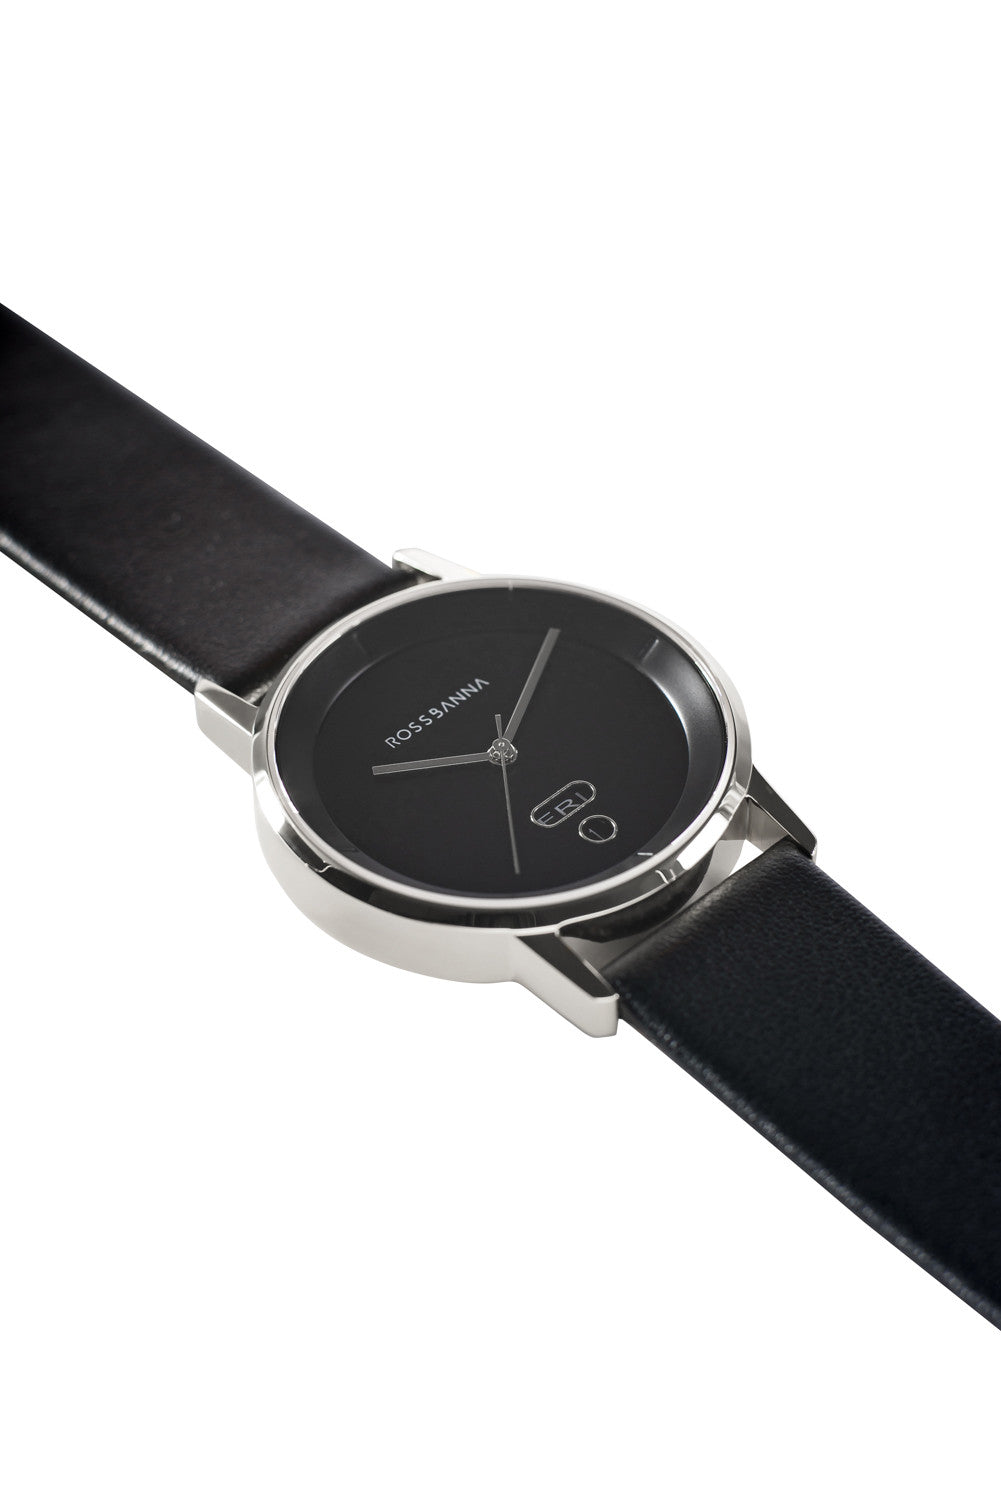 Silver Rossbanna Cornice watch with black strap, minimal, elegant, timeless, unique timepiece 02